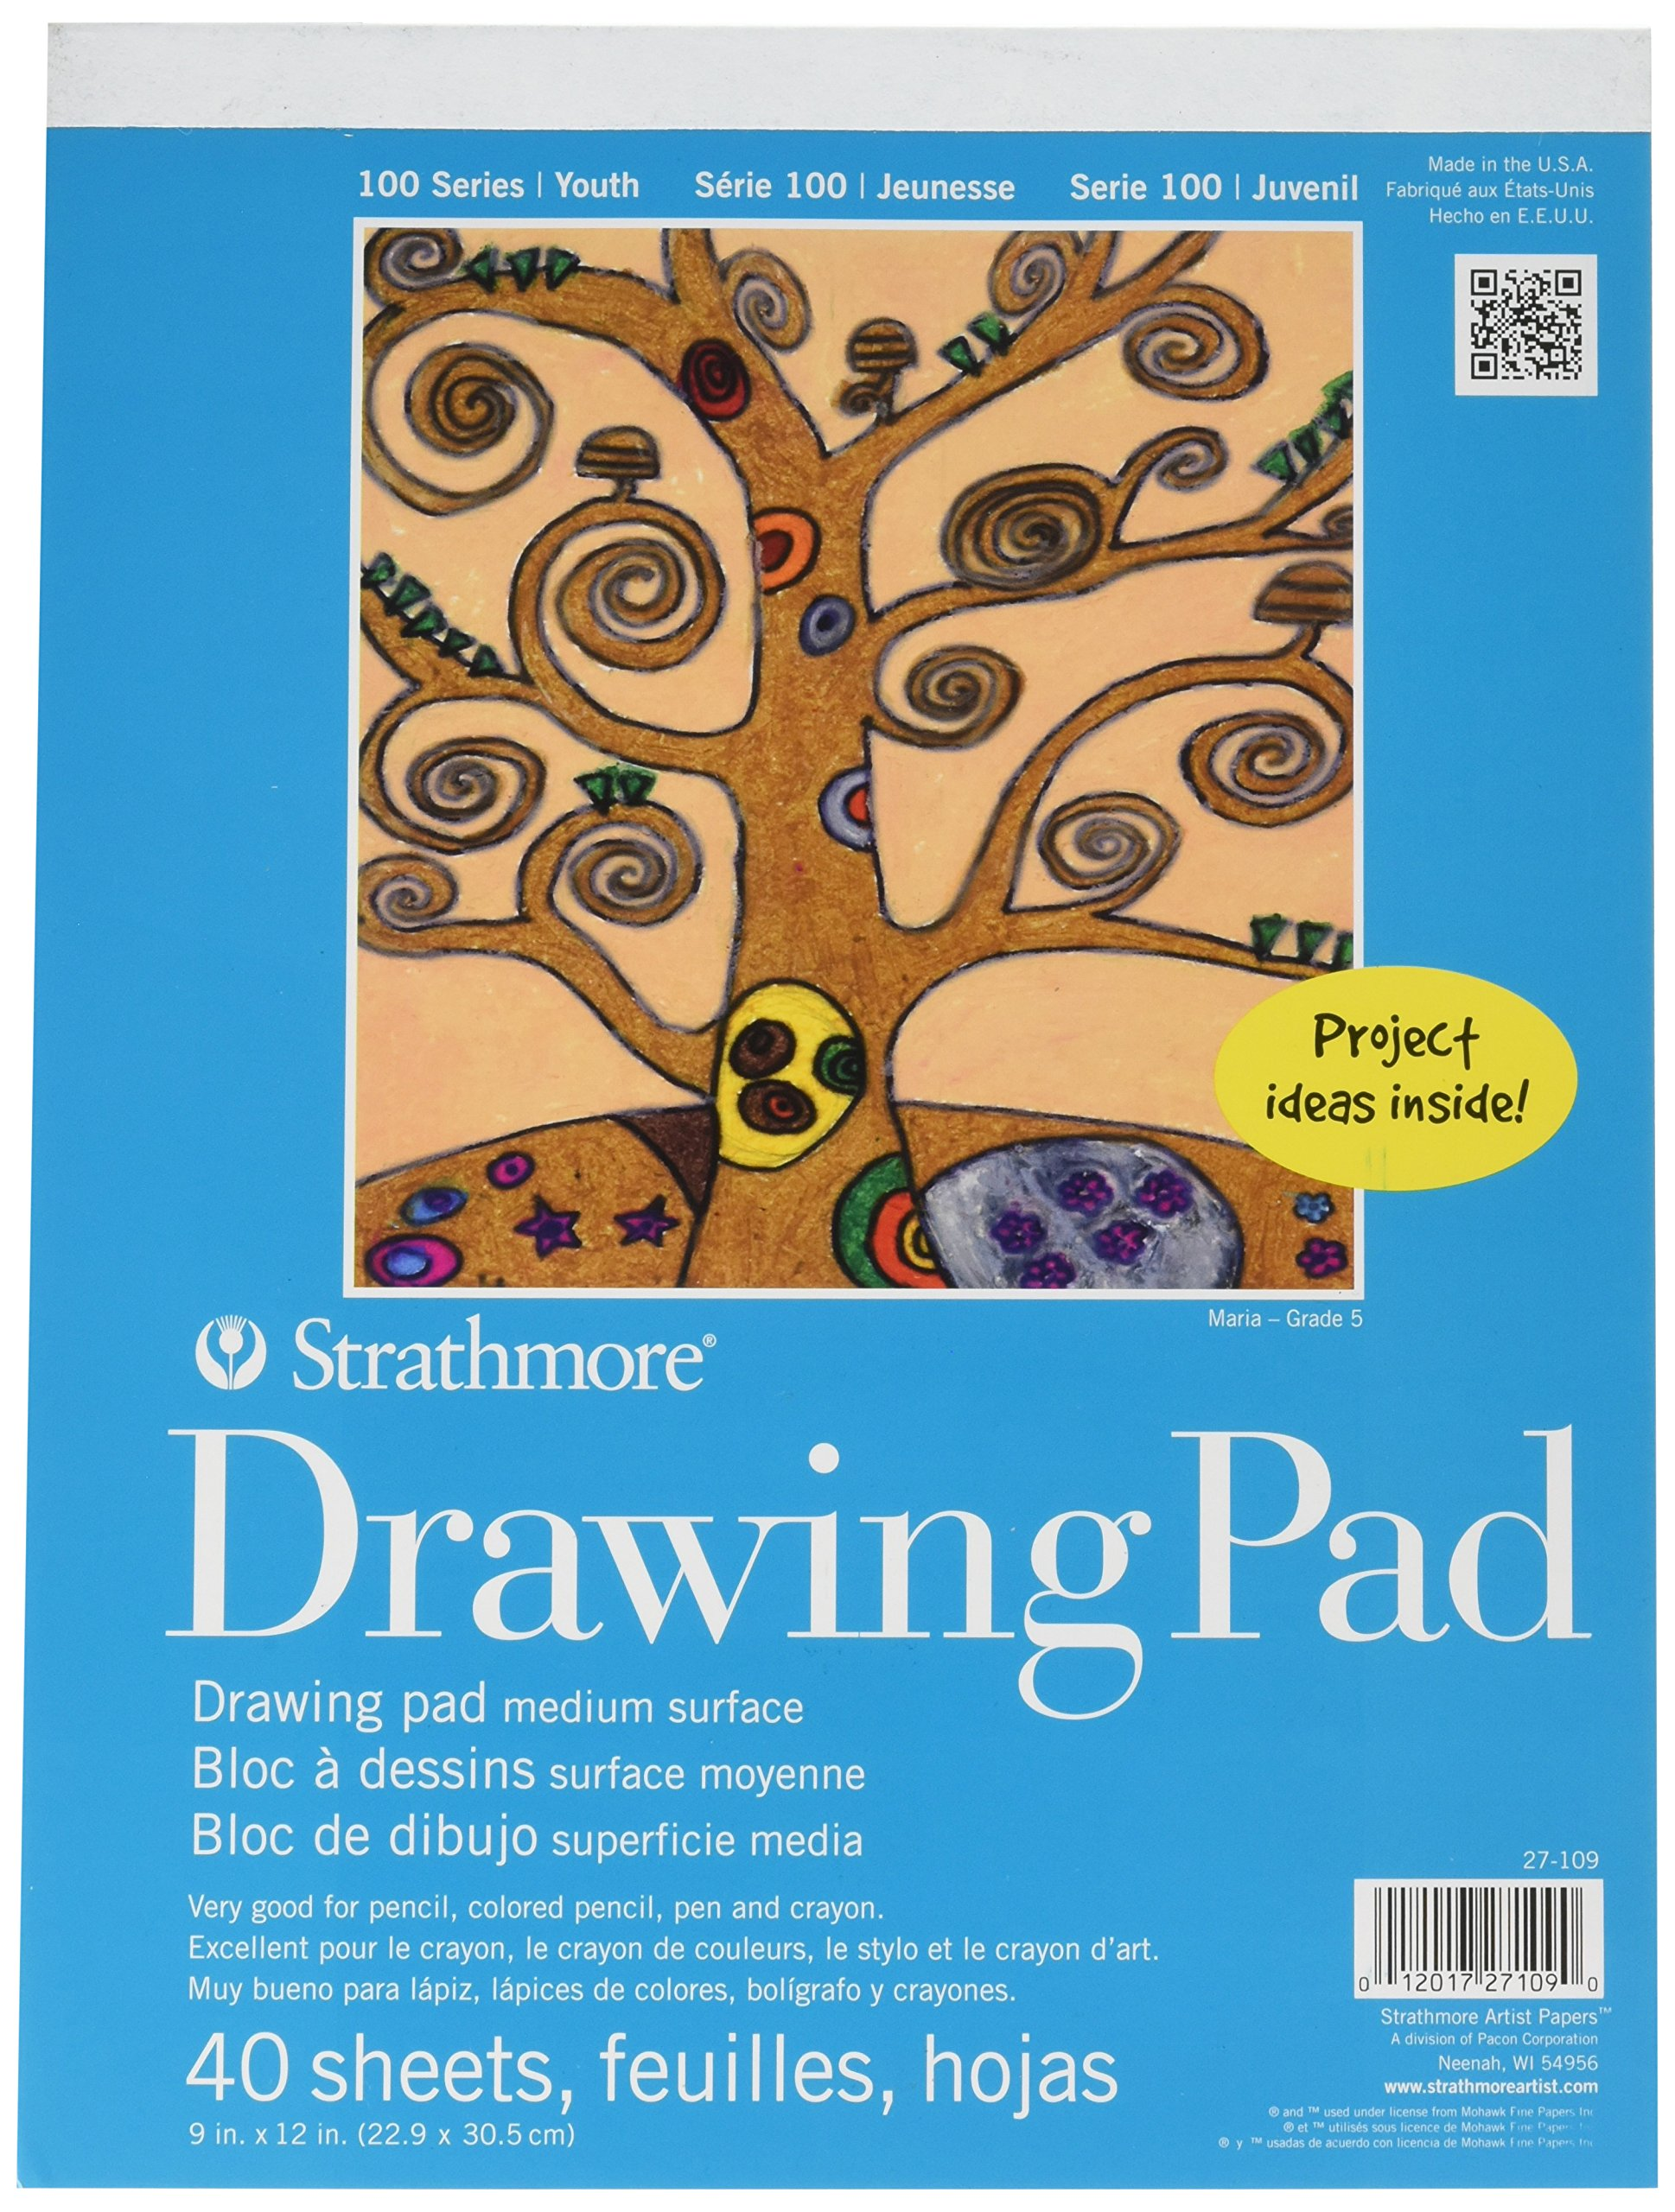 Strathmore 27-109 100 Series Youth Drawing Pad, 9 by 12